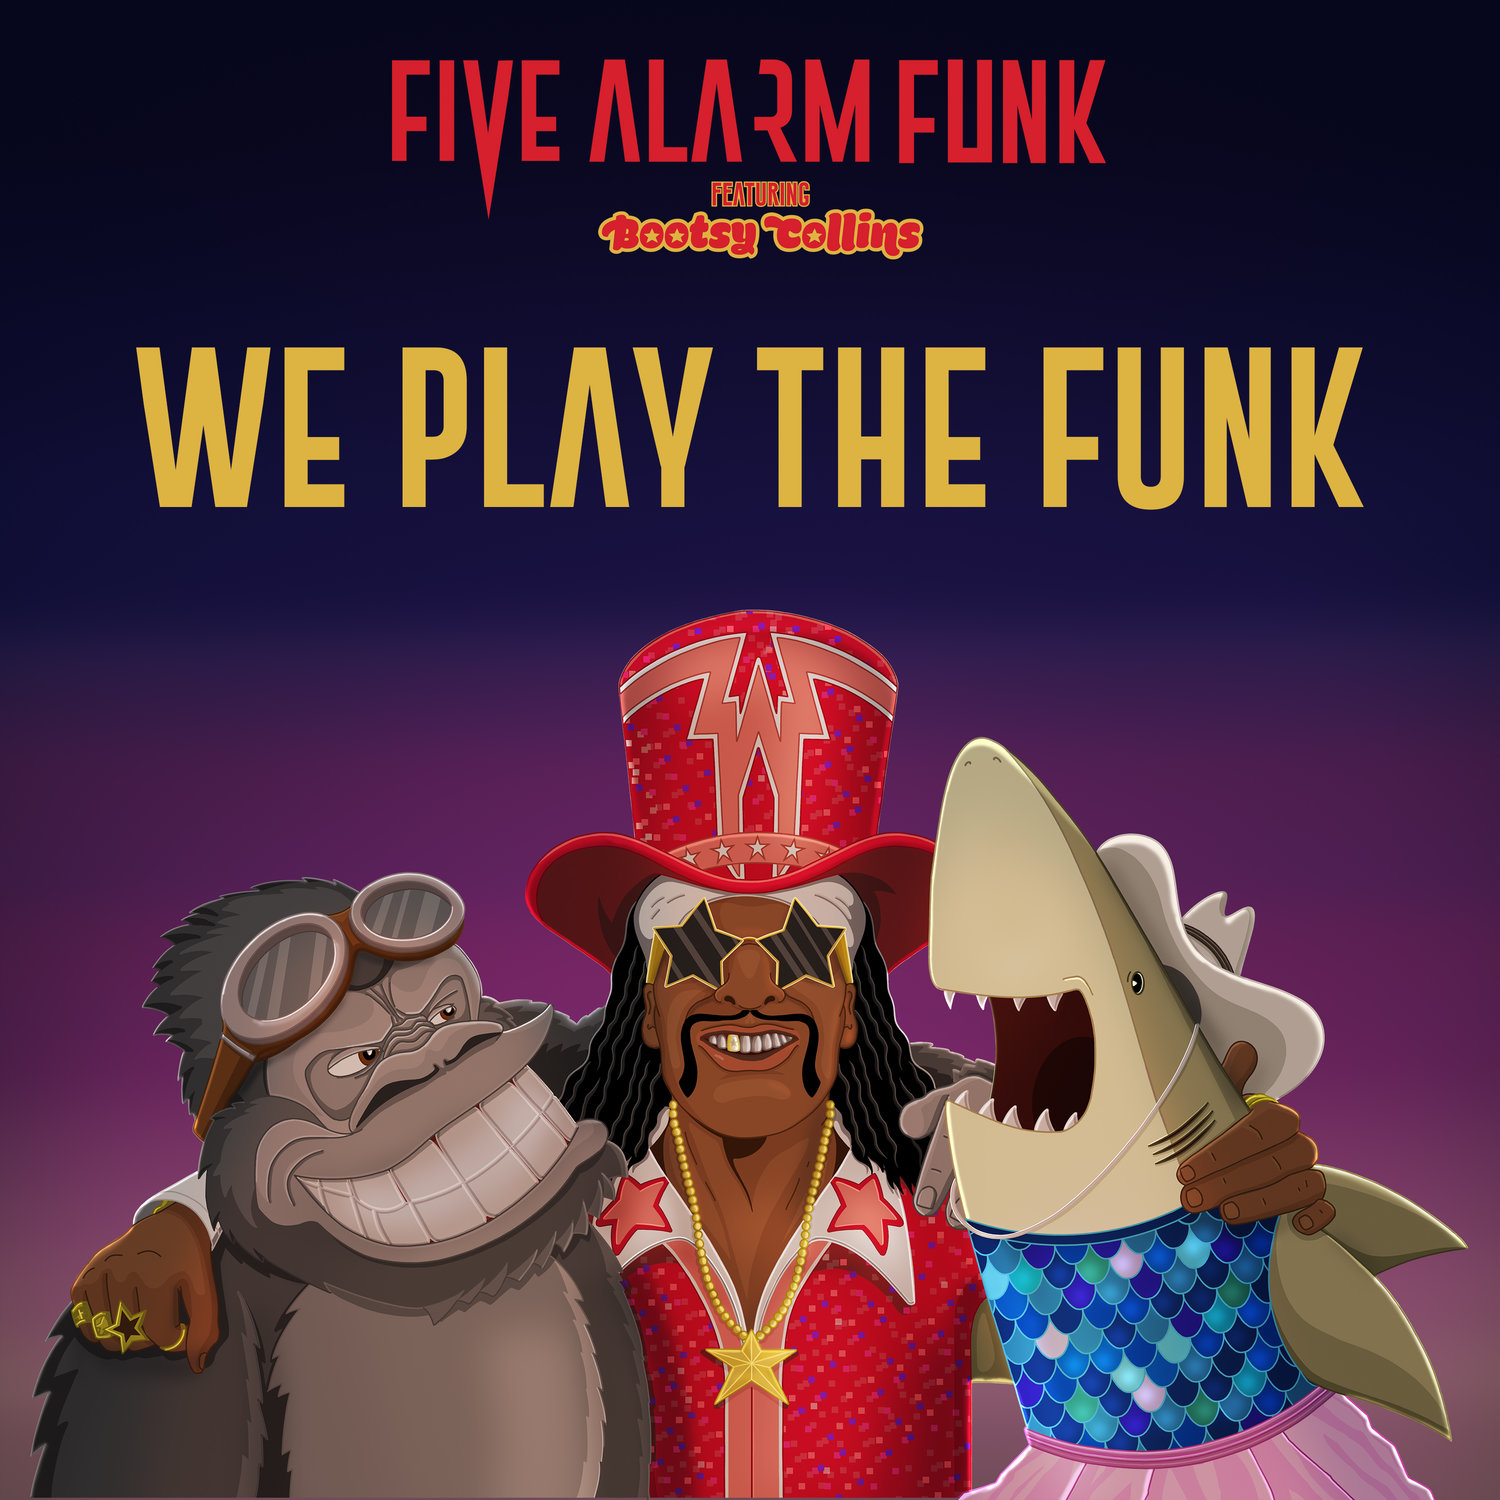 Five Alarm Funk -Boots and Wheels  Release date:  Mar. 9, 2018  Credit:  Producer, Engineer, Mixer, Keyboards